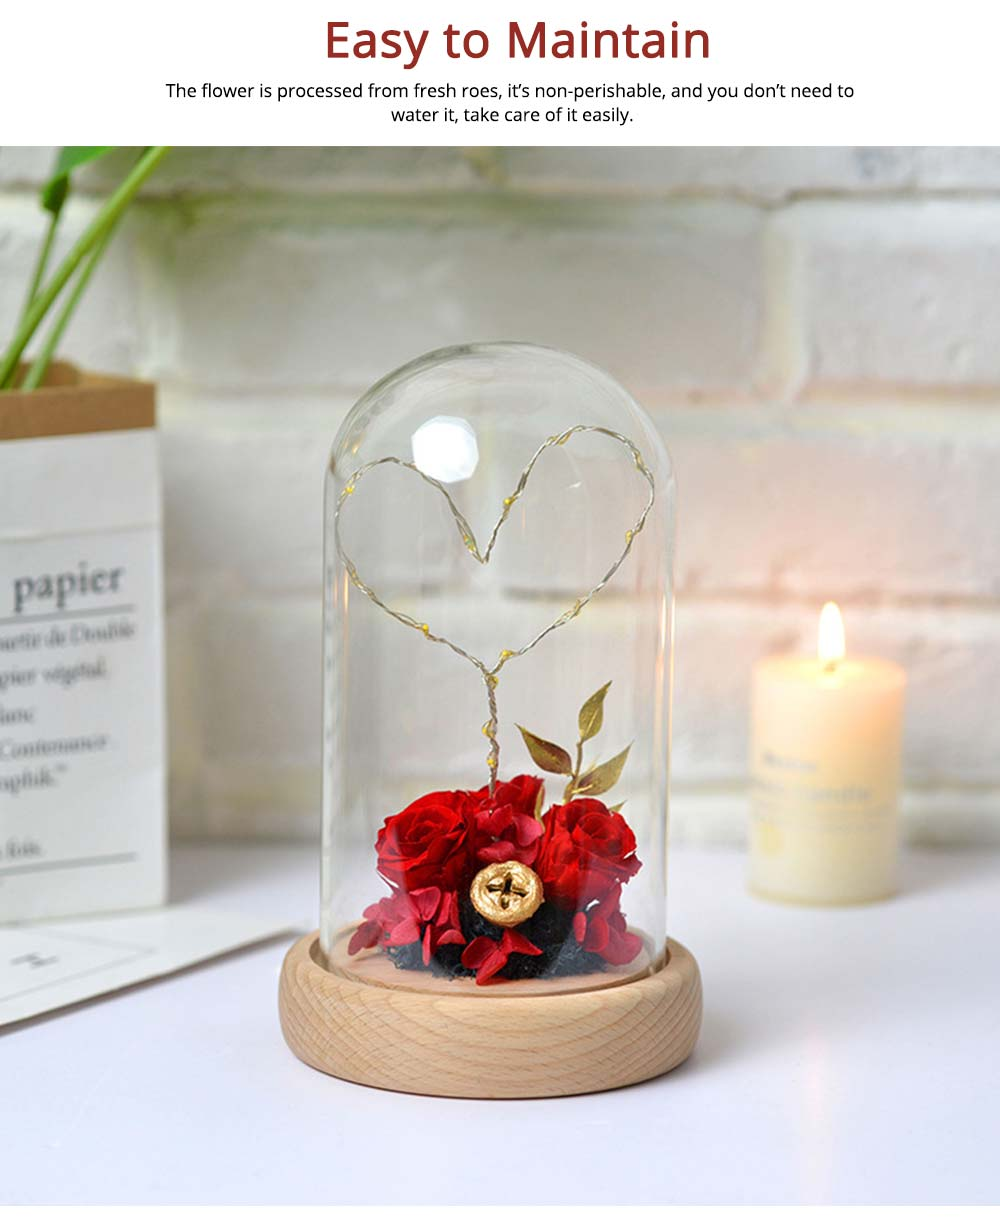 Imitation Rose Preserved Fresh Flower with LED Light Glass Cover, Great Valentine's Day Gift 2